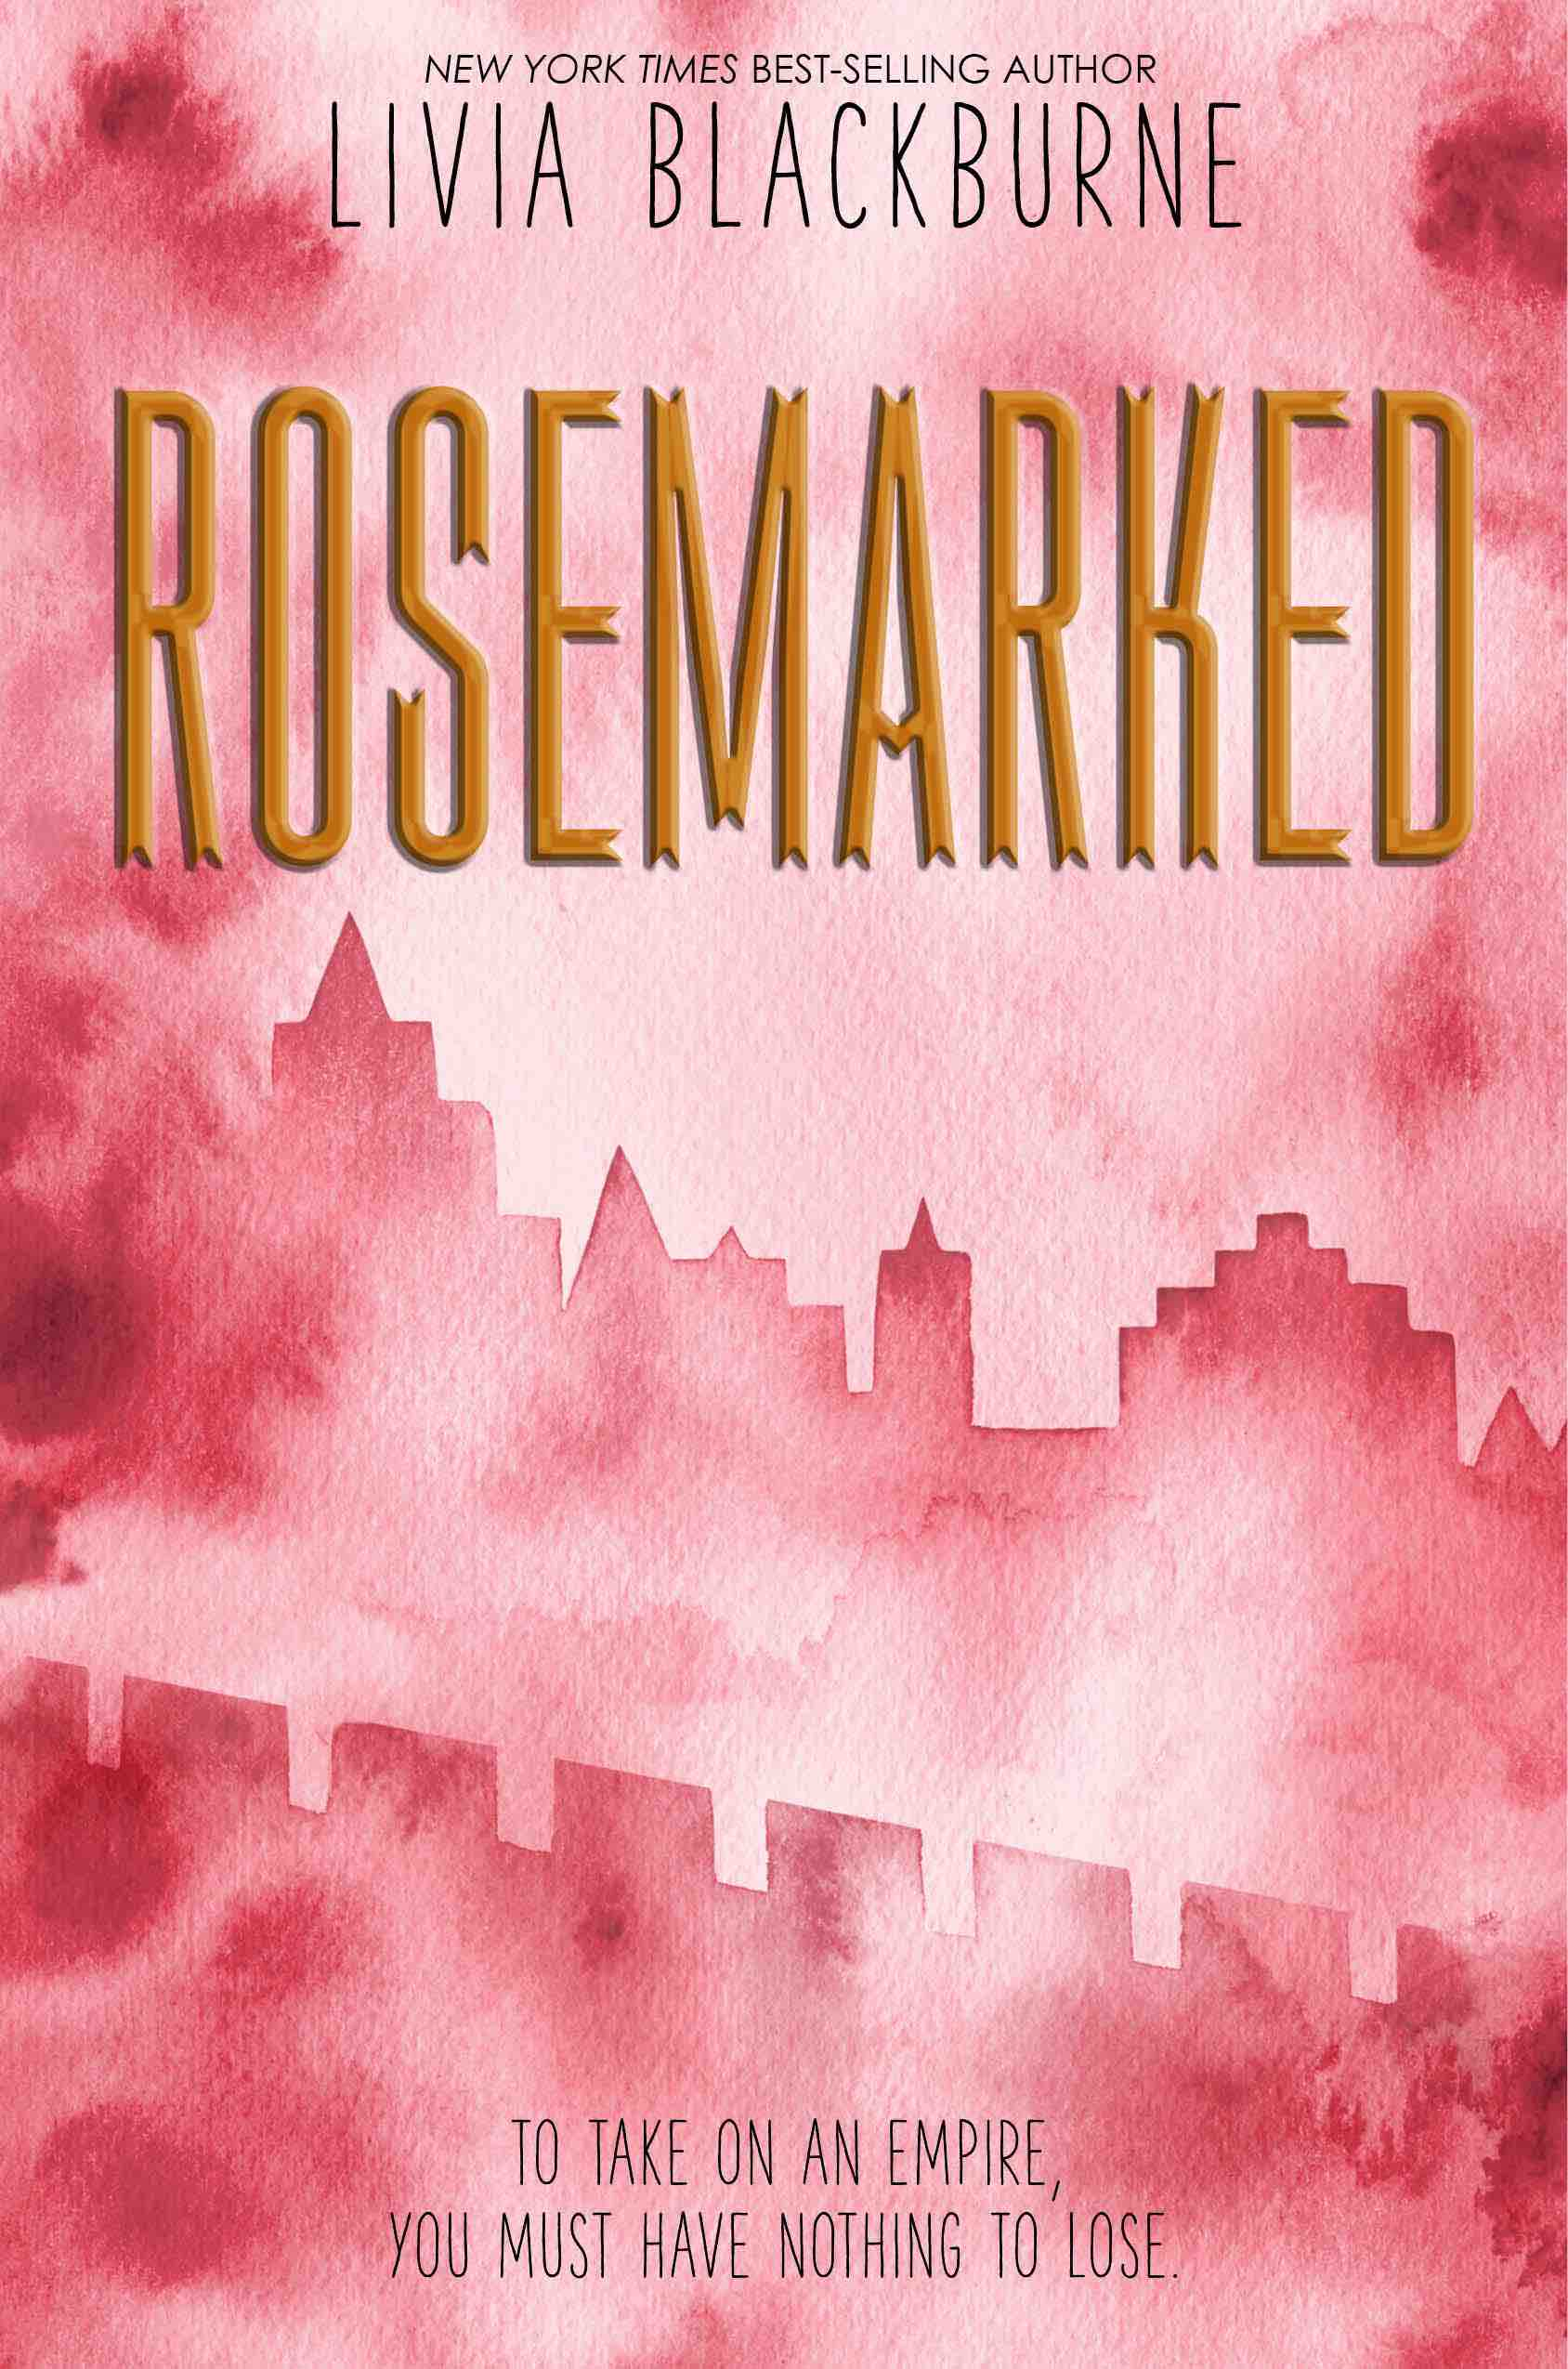 Rosemarked Livia Blackburne